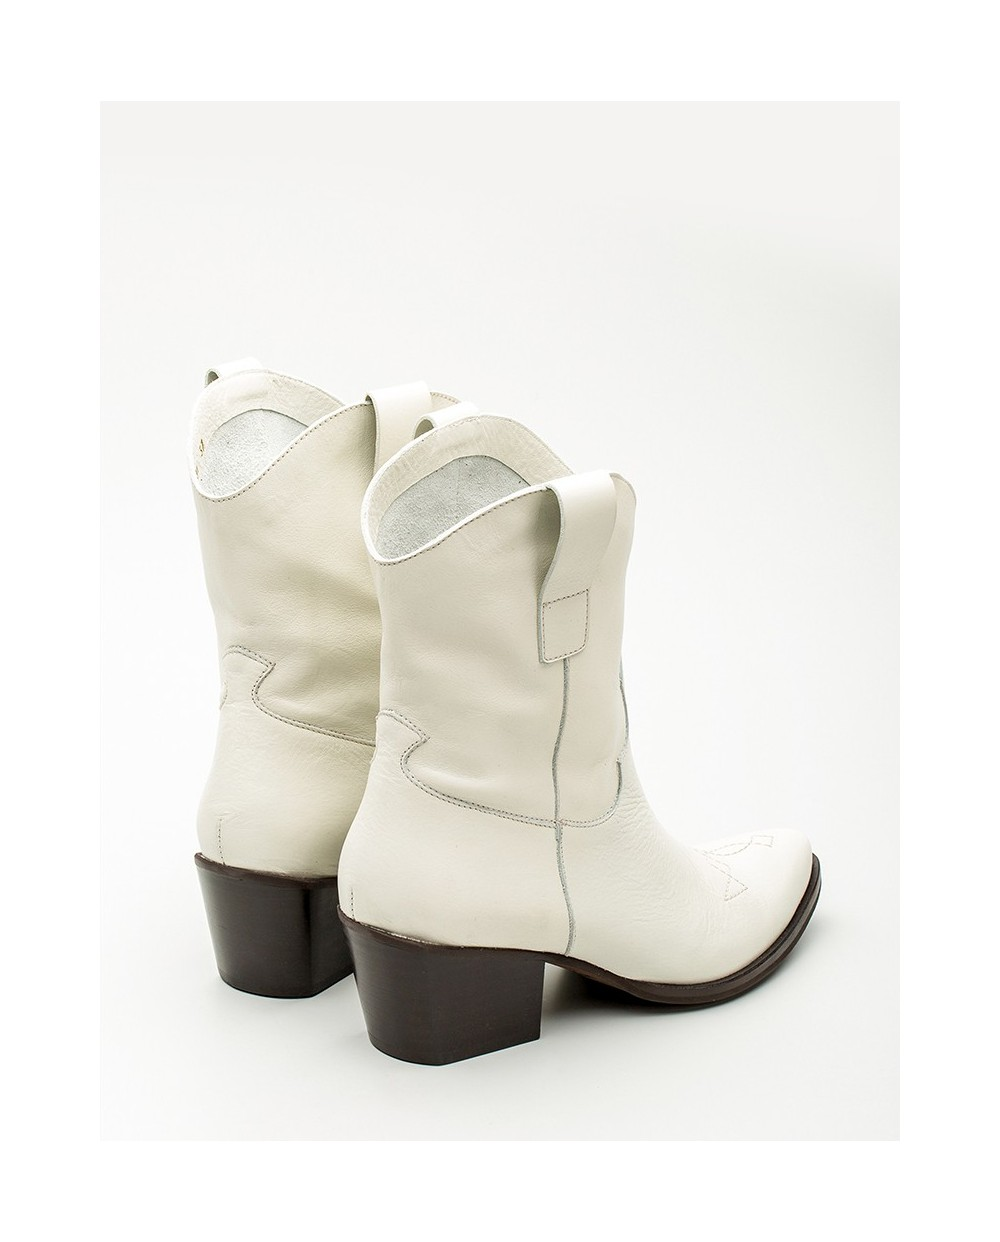 Leather Cowboy style ankle boot